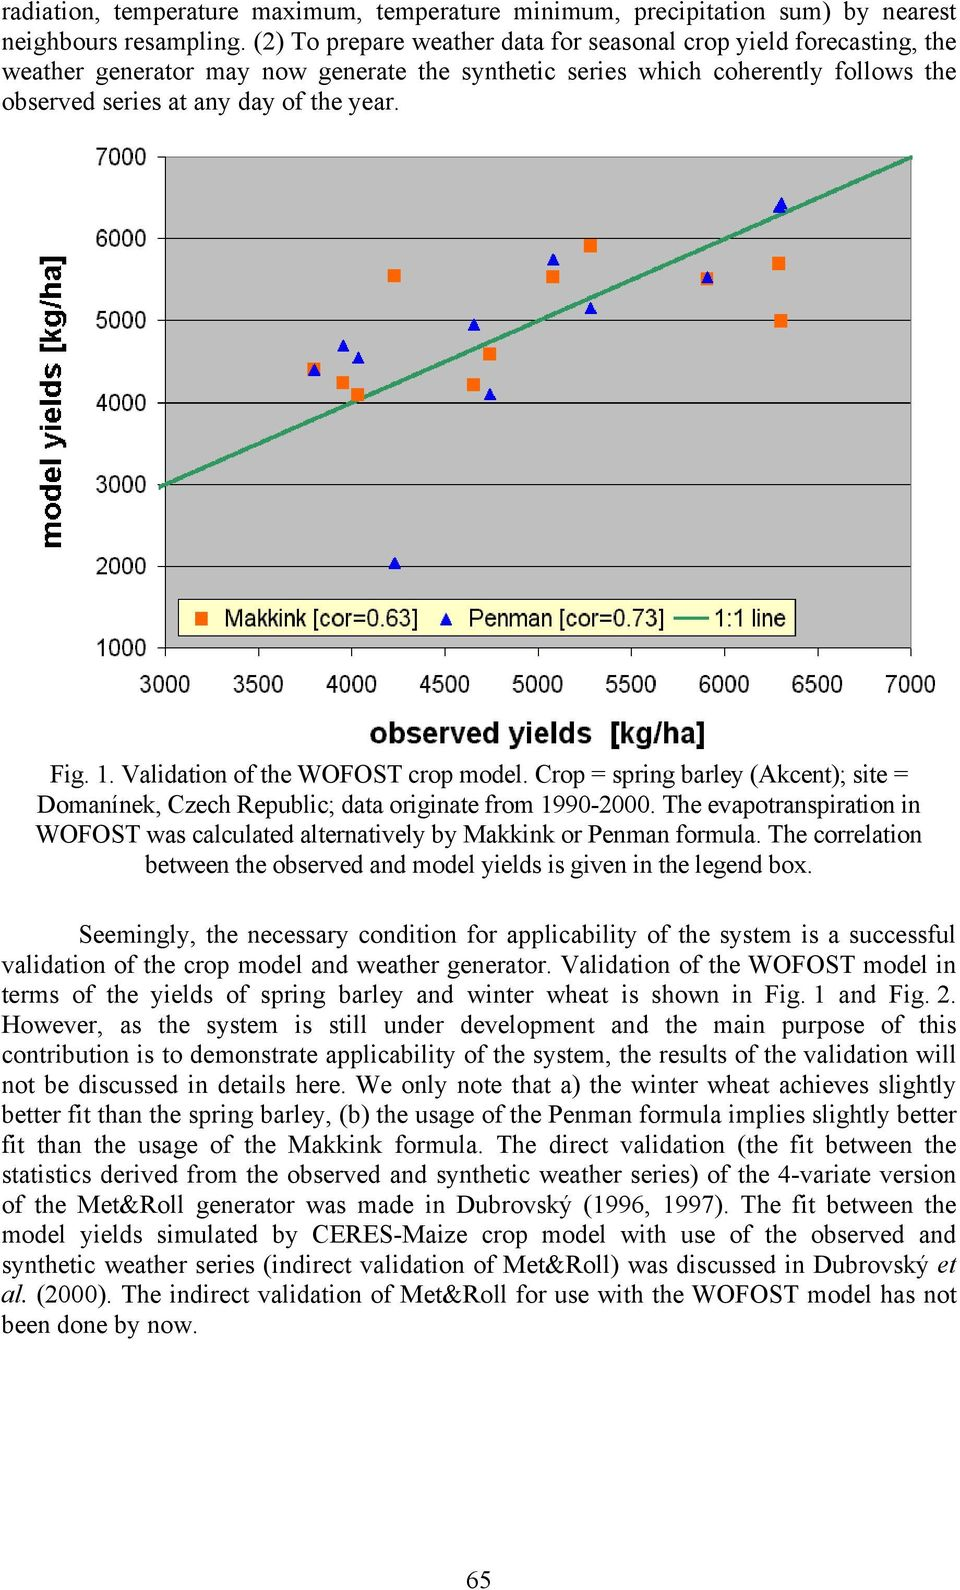 1. Validation of the WOFOST crop model. Crop = spring barley (Akcent); site = Domanínek, Czech Republic; data originate from 1990-2000.